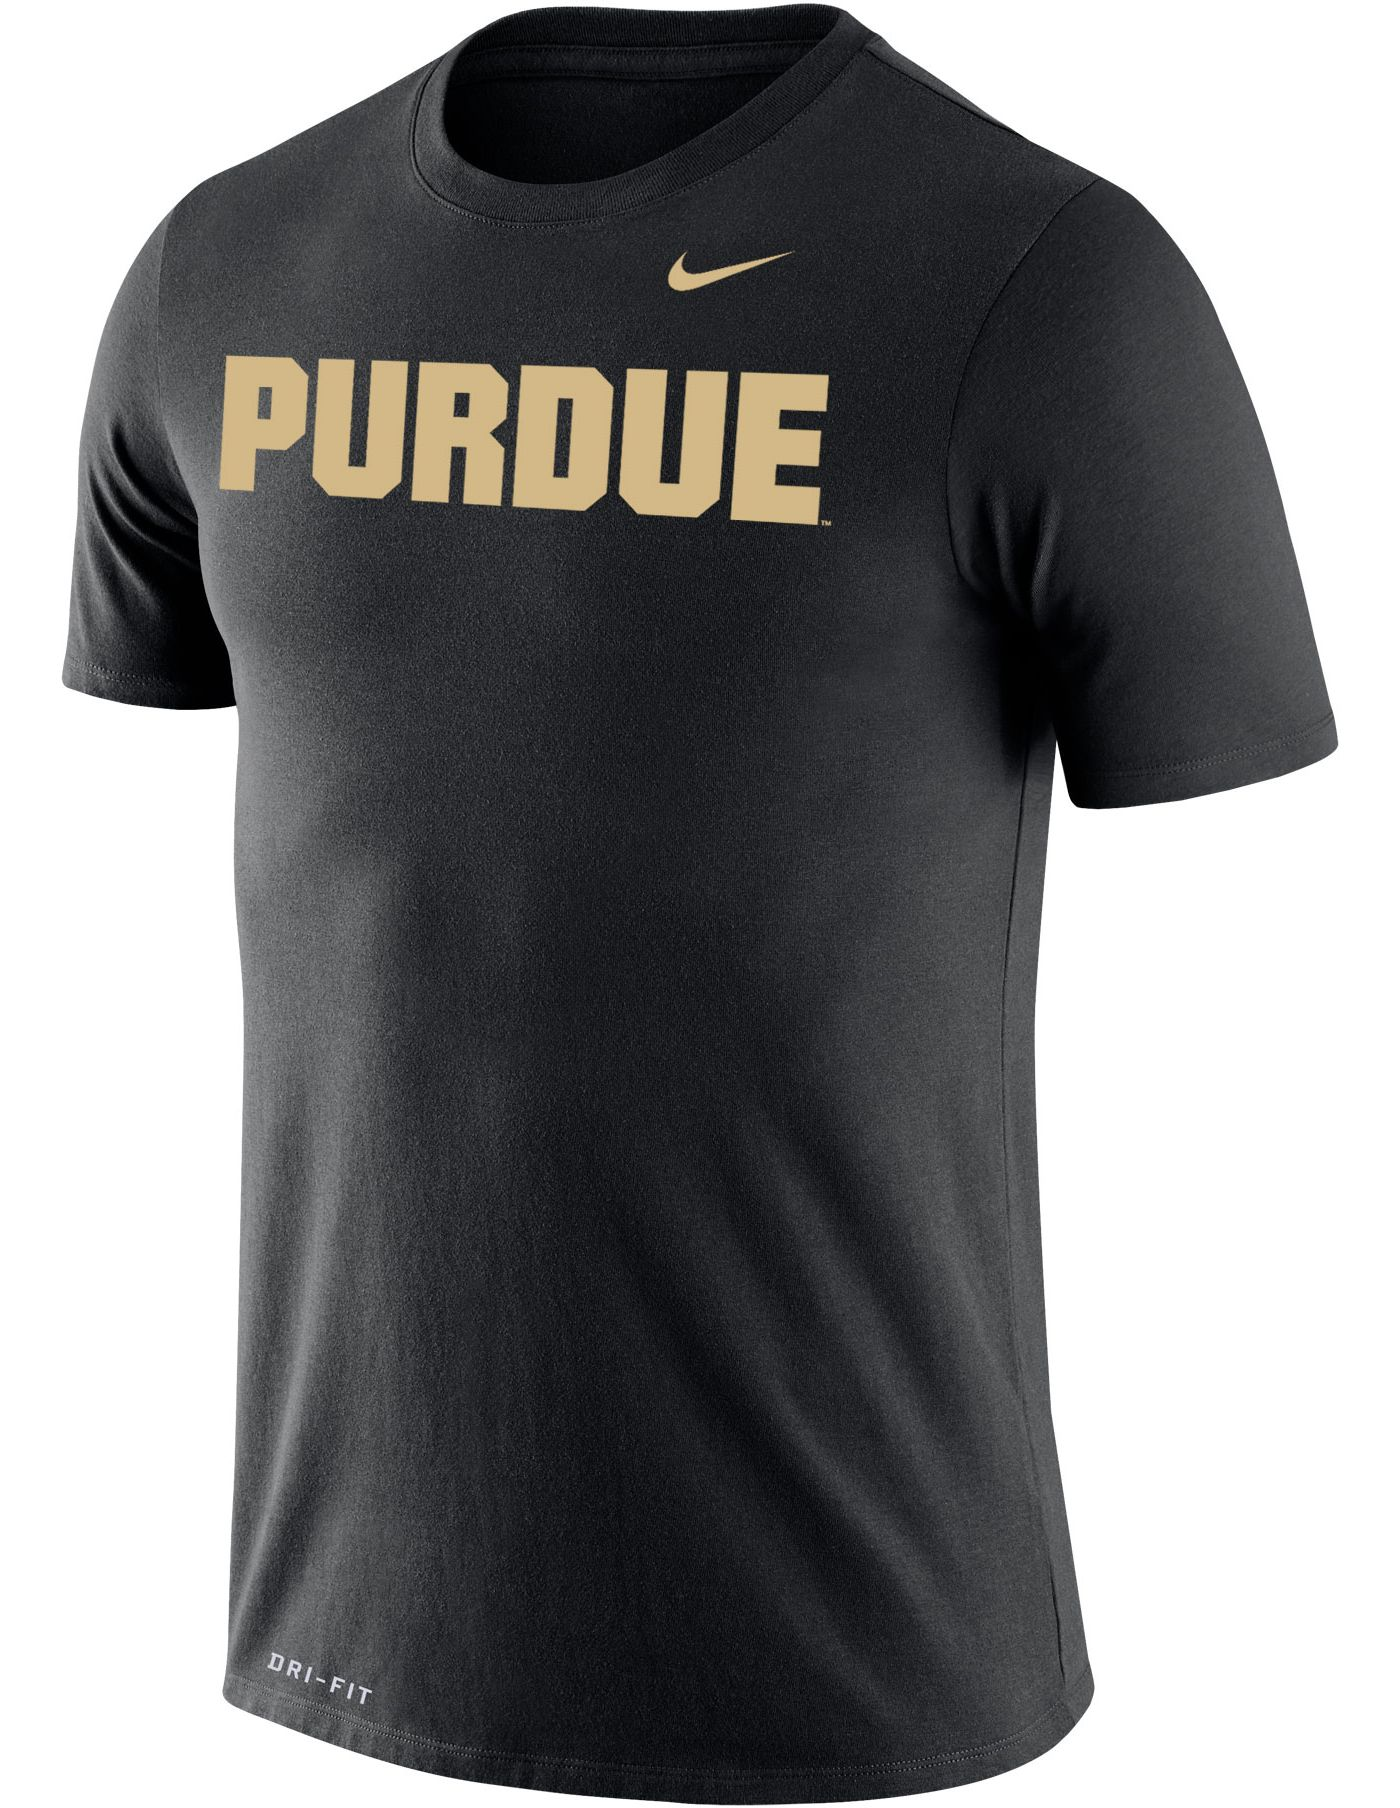 Nike Men's Purdue Boilermakers Dri-FIT Cotton Word Black T-Shirt